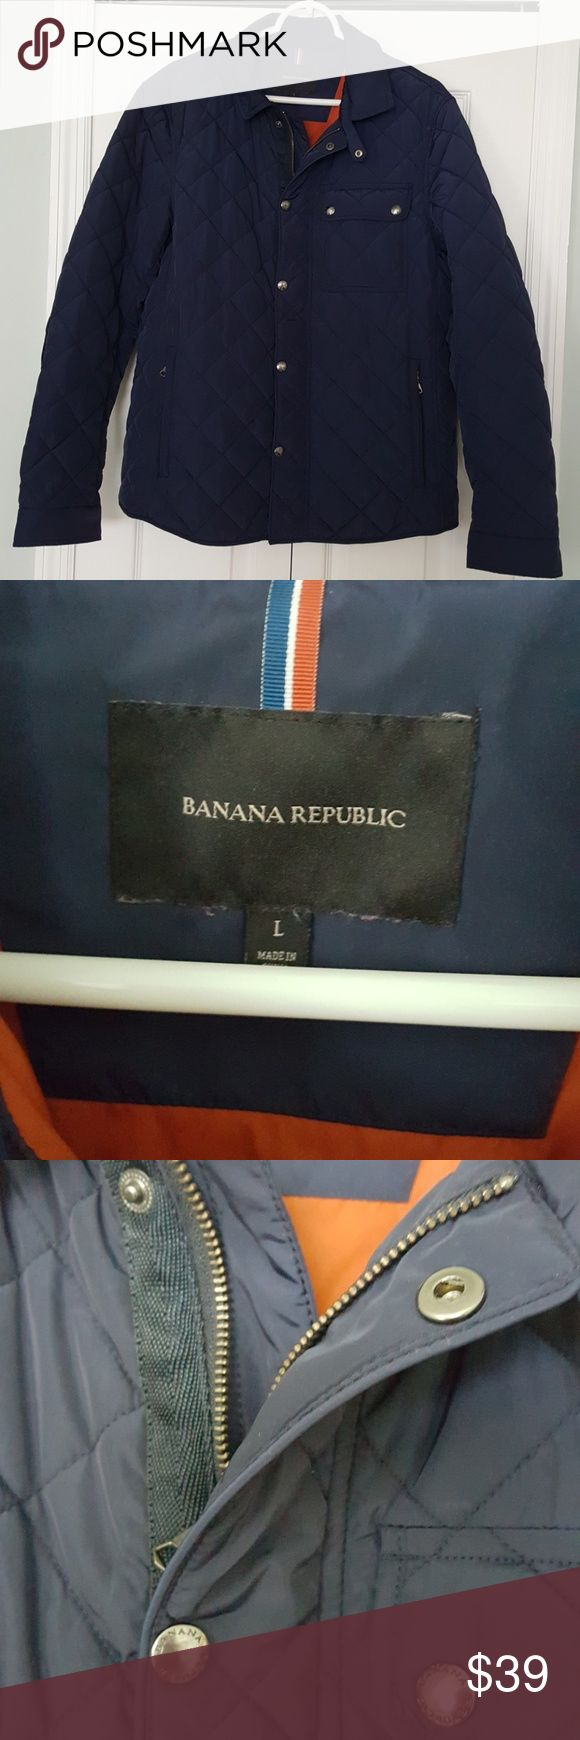 Men's puffer coat by Banana Republic Gorgeous navy puffer coat with orange interior lining by Banana Republic. This coat is NOT down filled. Great detail on back of sleeve as pictured. See tag for fabric composition. EUC Banana Republic Jackets & Coats Puffers